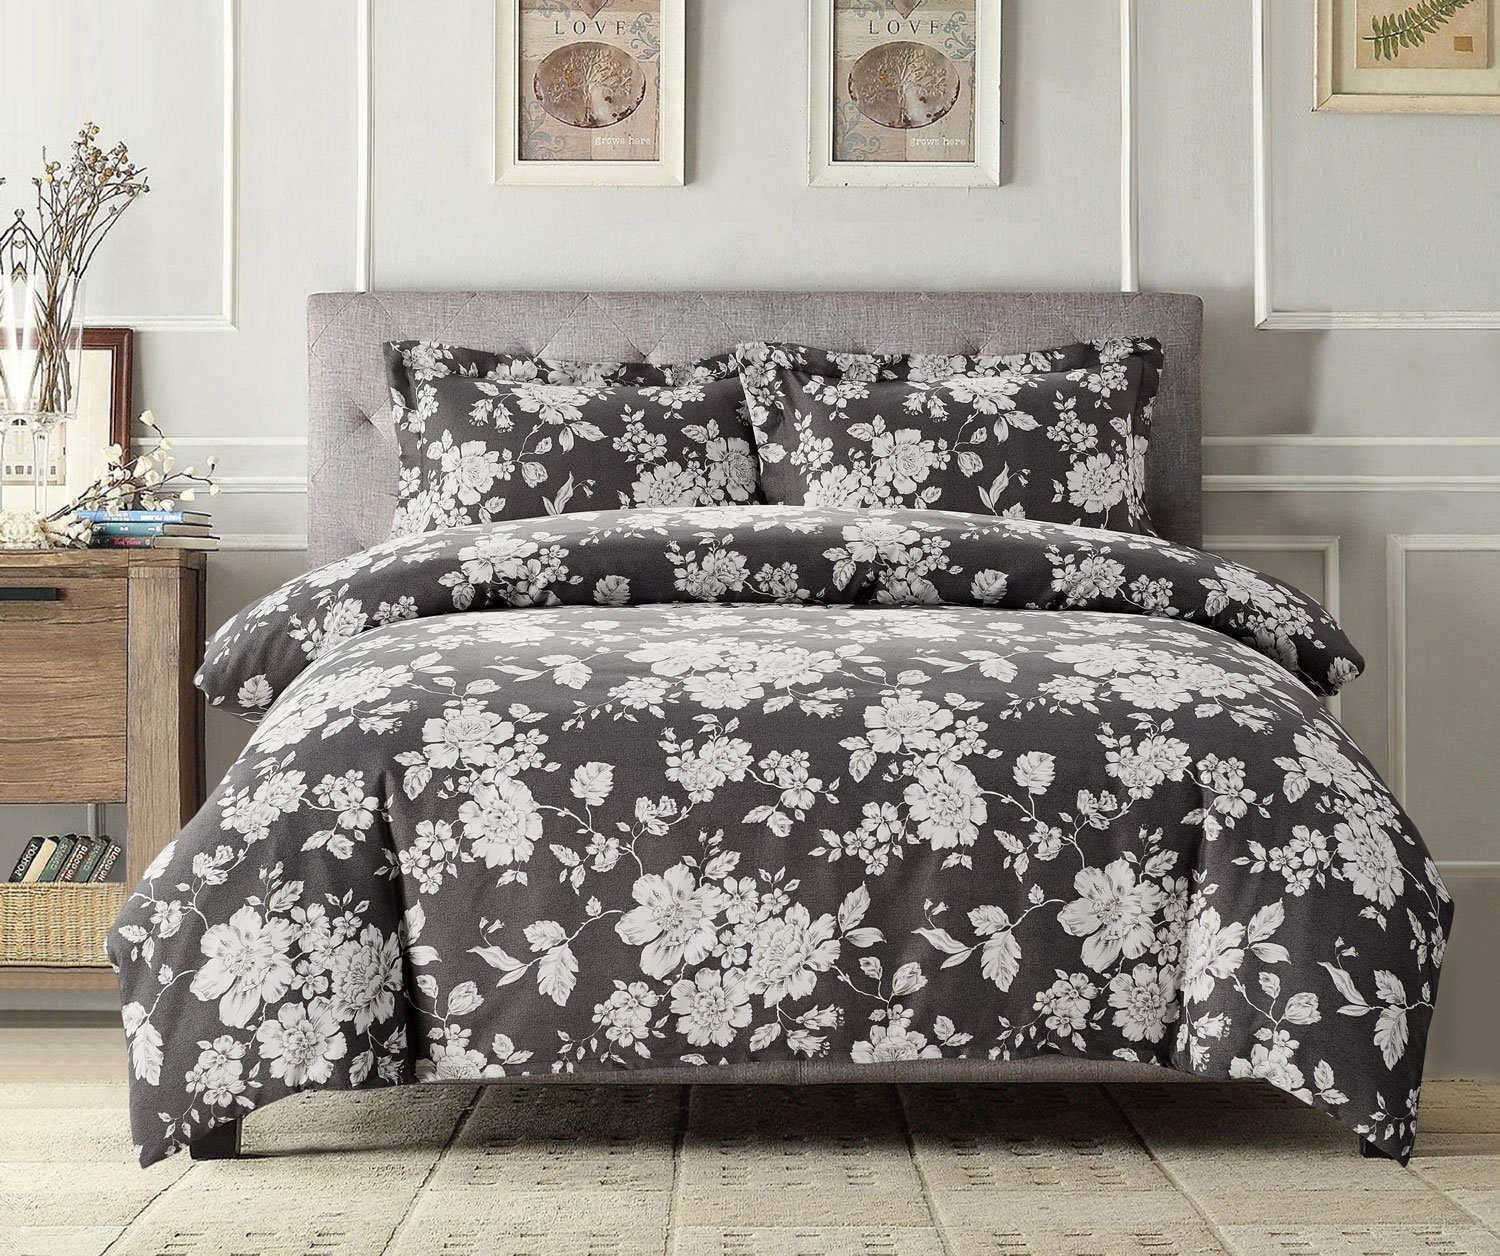 Gray Floral Duvet Cover Set, White Vintage Flowers Pattern Printed on Grey